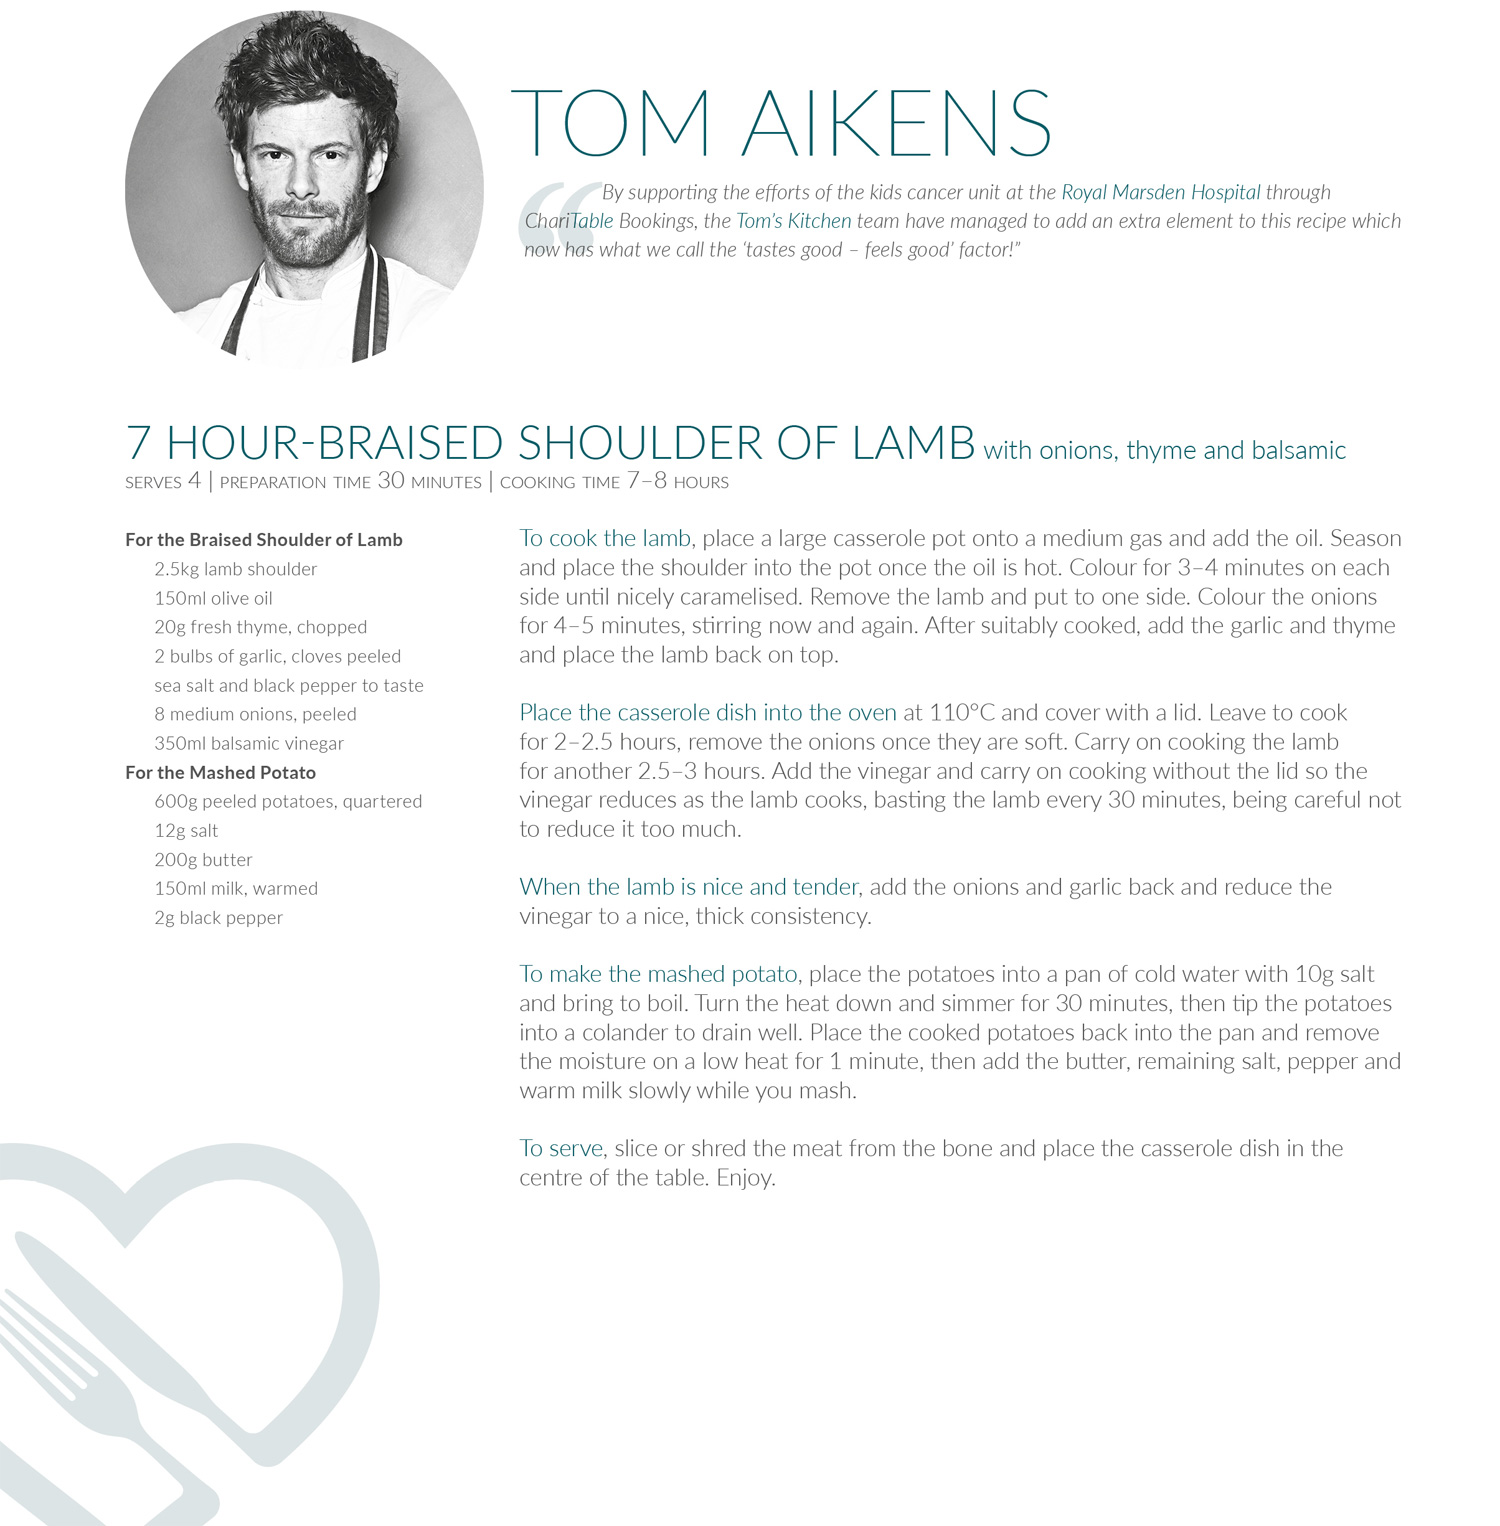 Tom-Aikens-2